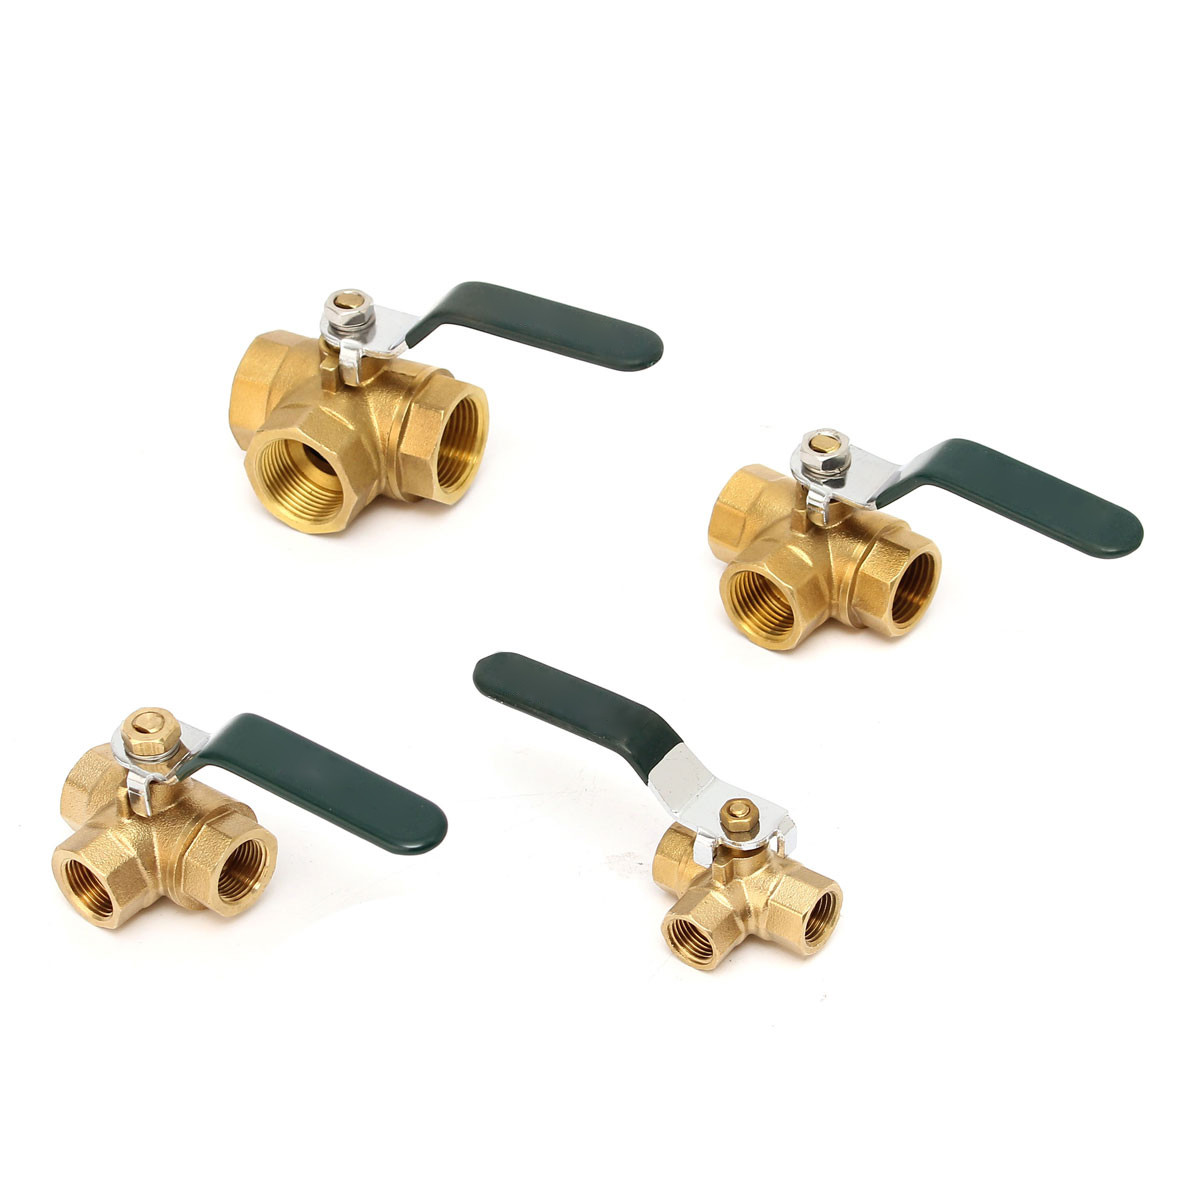 1/4 3/8 <font><b>1/2</b></font> 3/4Brass <font><b>Ball</b></font> <font><b>Valve</b></font> Fixed 3 Way Full L Type Port Thread Connector Faucet Value Water Filter Adapter Handle image